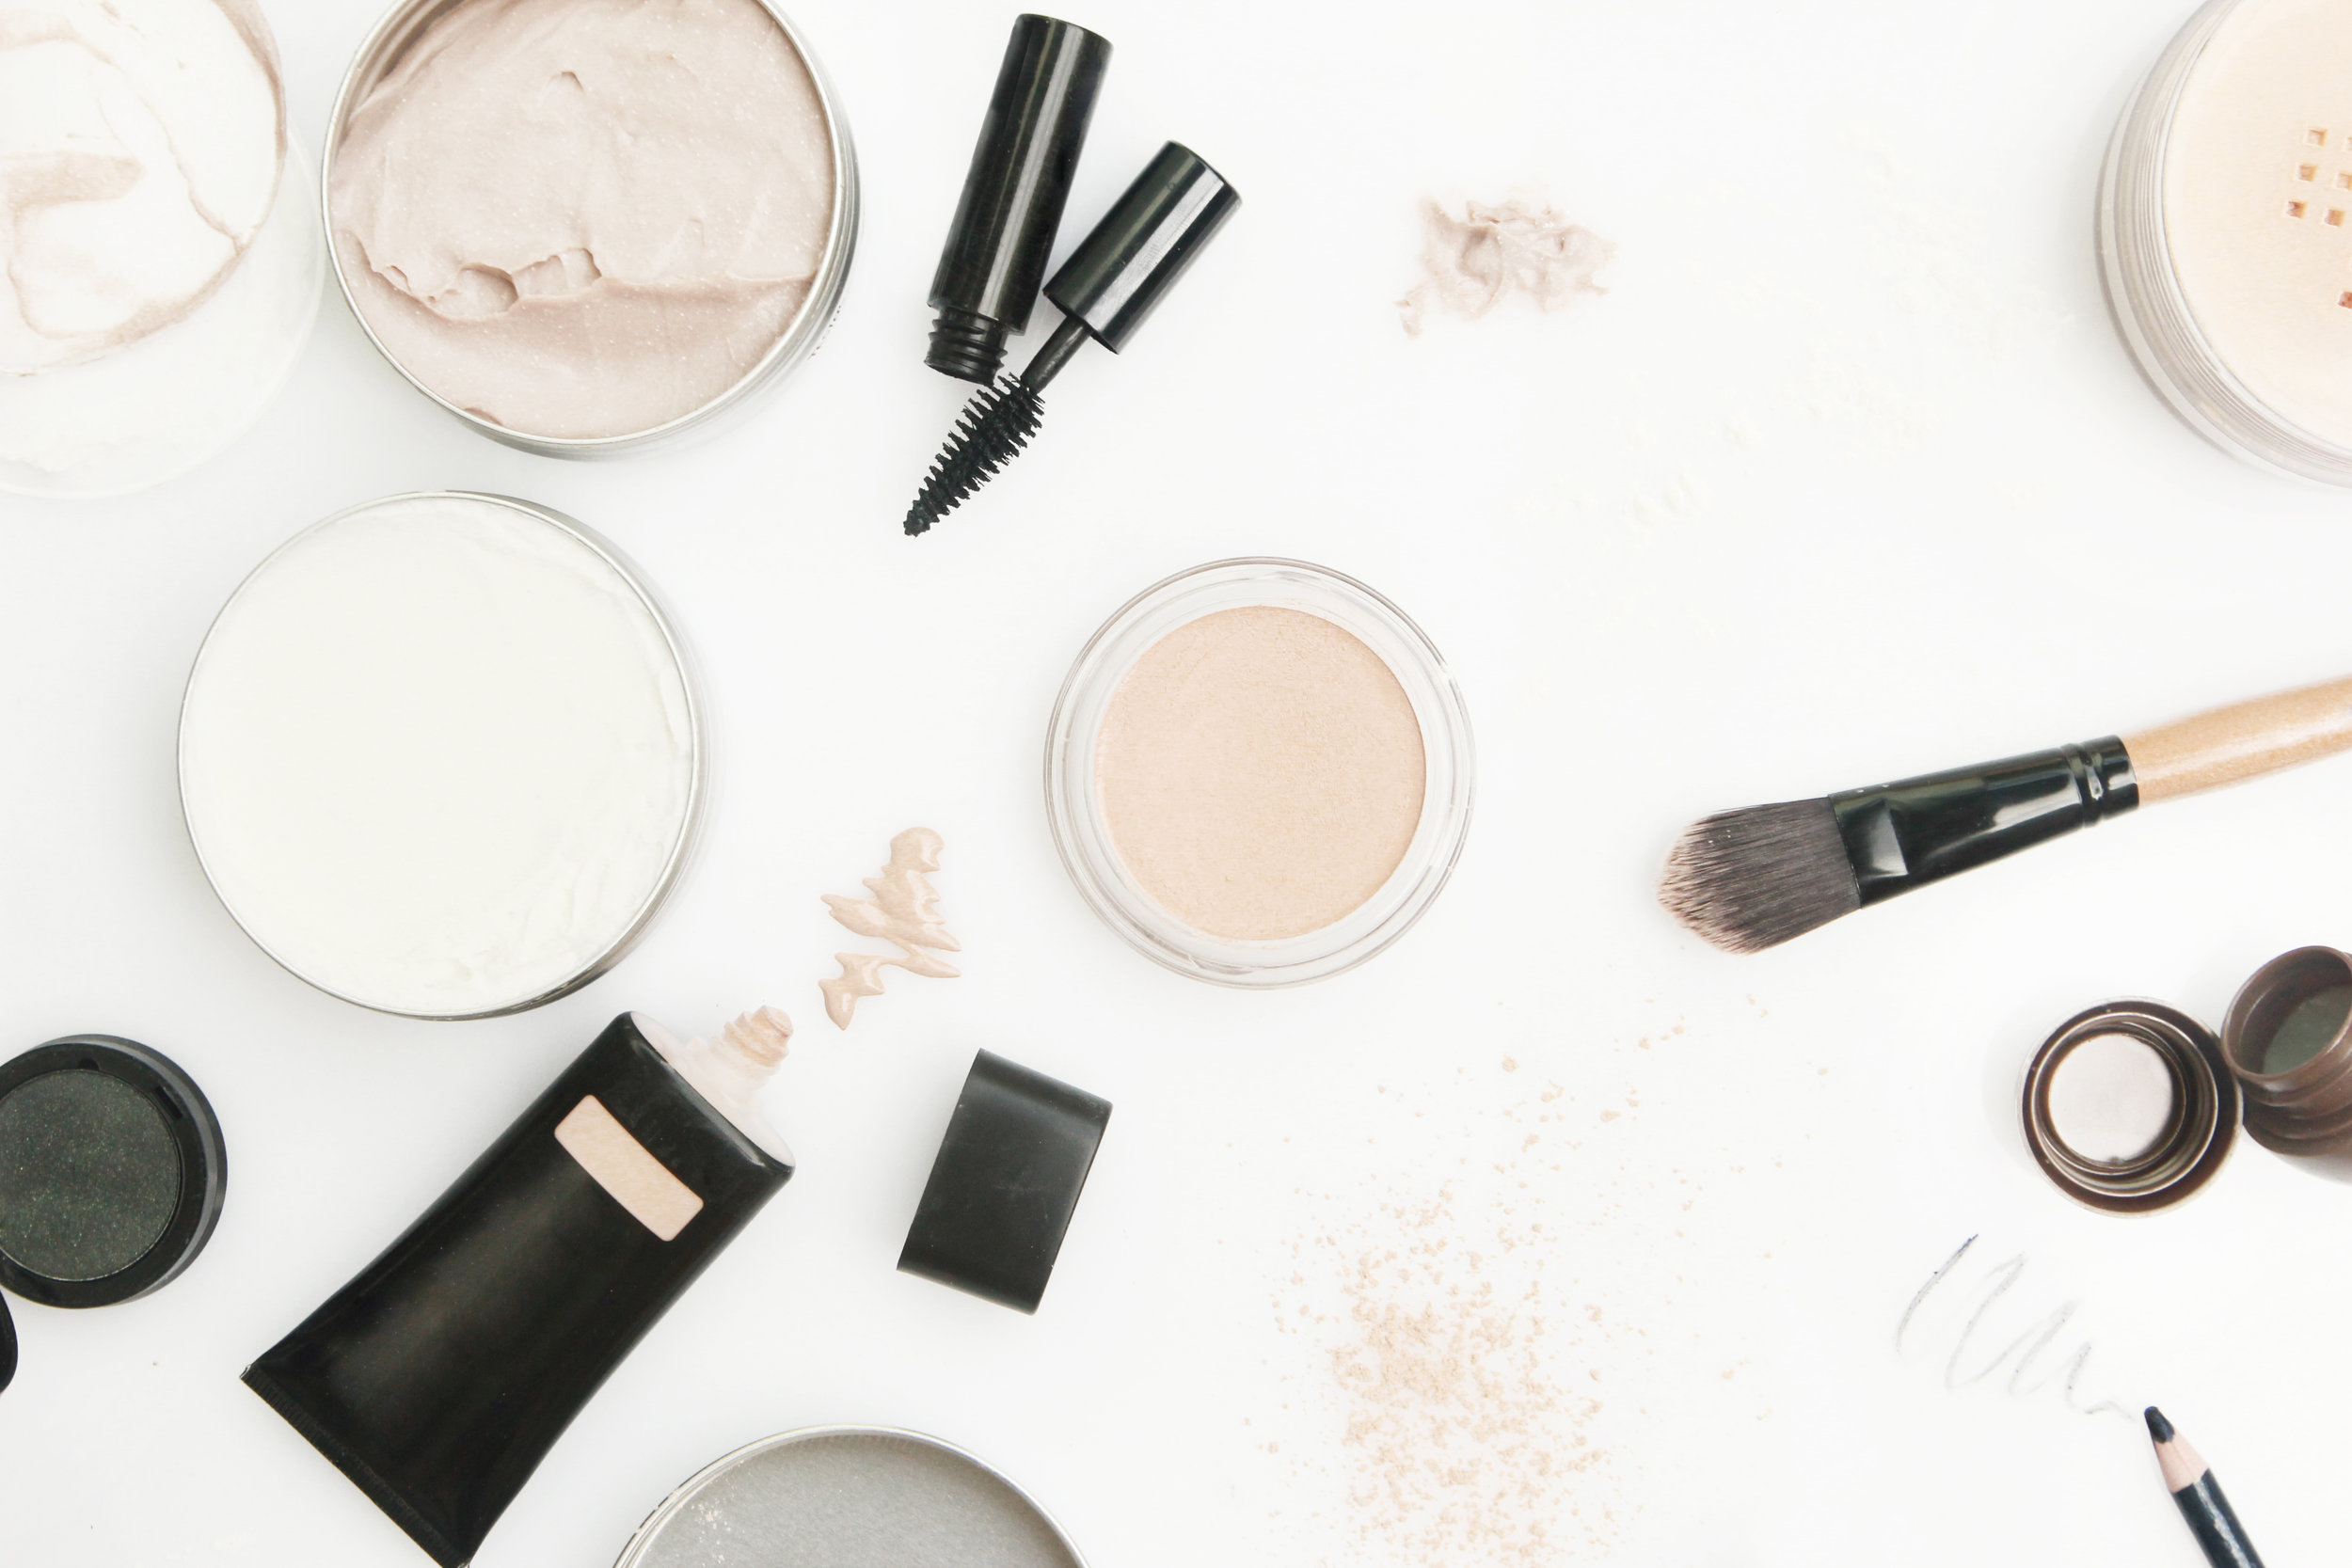 Top-view-of-different-cosmetics-products-513313150_3456x2304.jpeg